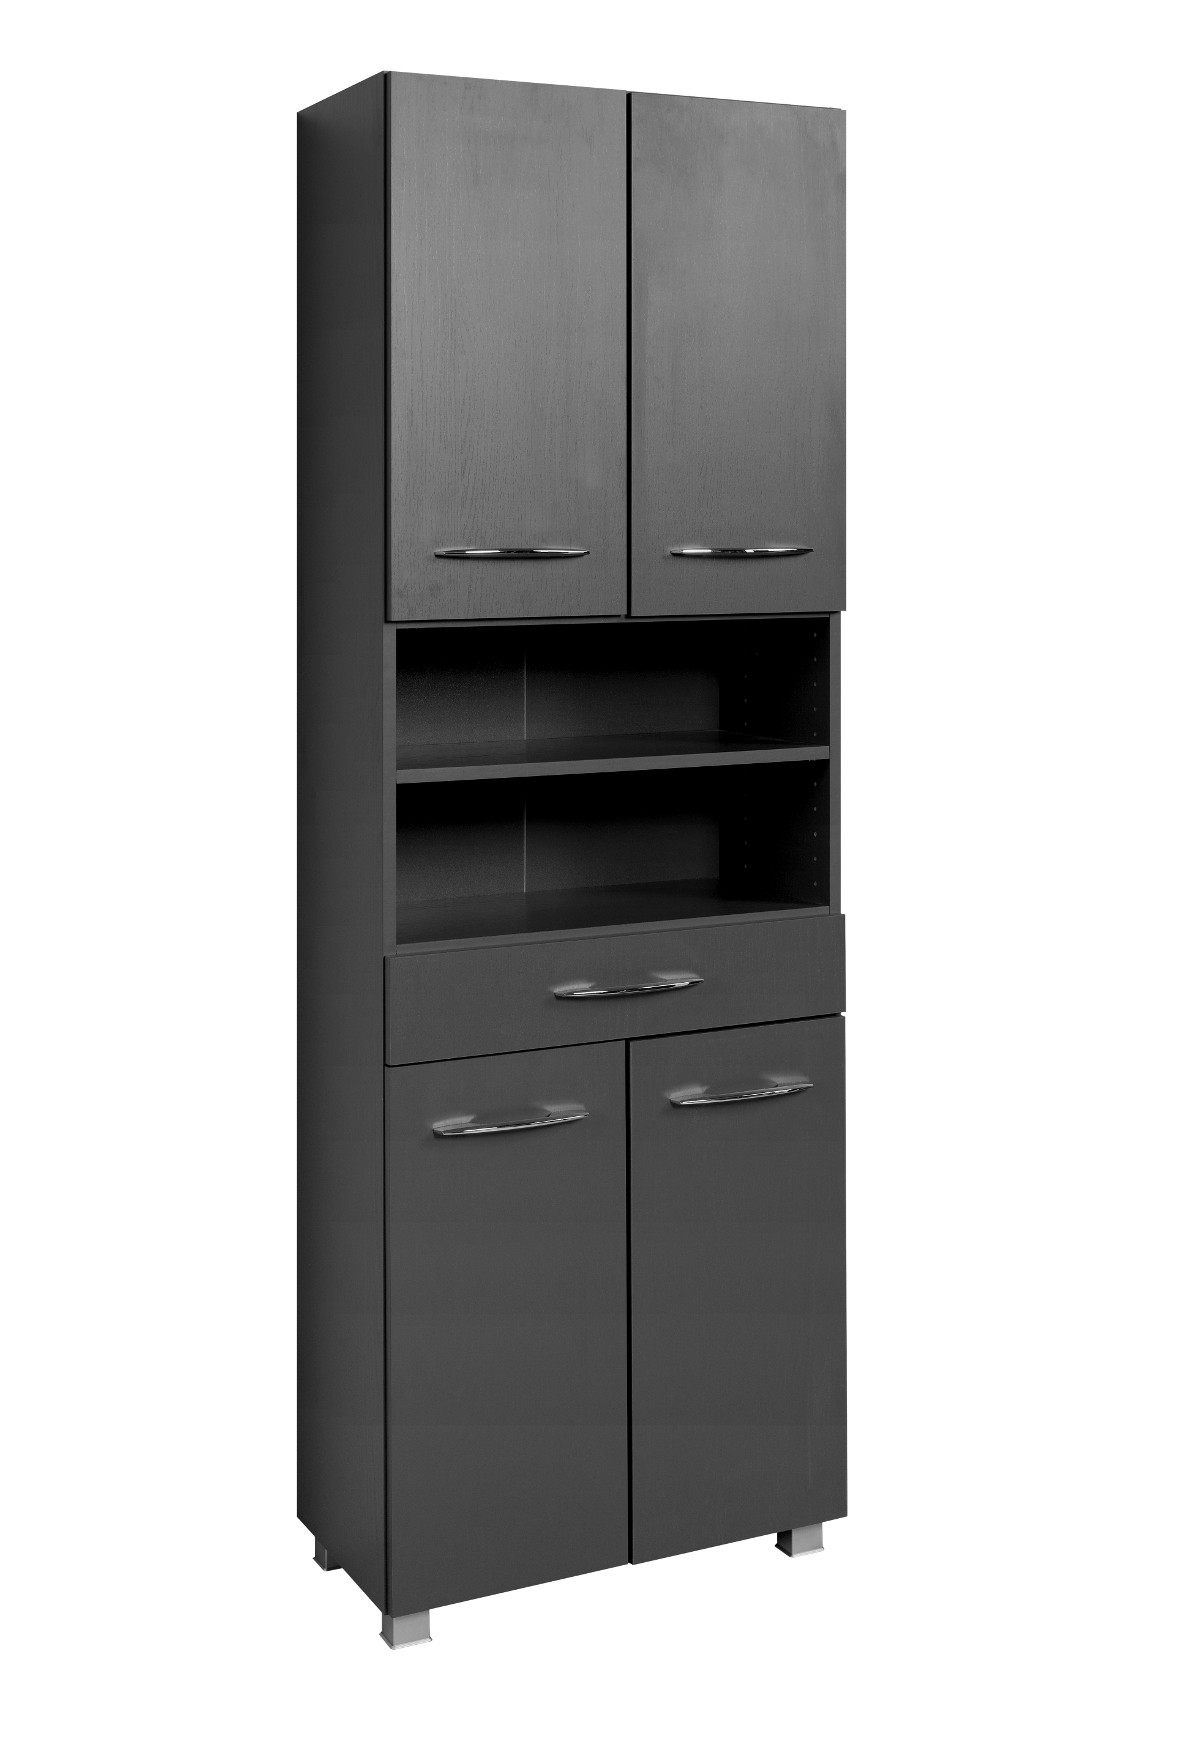 bad hochschrank portofino 4 t rig 1 schubkasten 60 cm breit graphitgrau bad bad hochschr nke. Black Bedroom Furniture Sets. Home Design Ideas